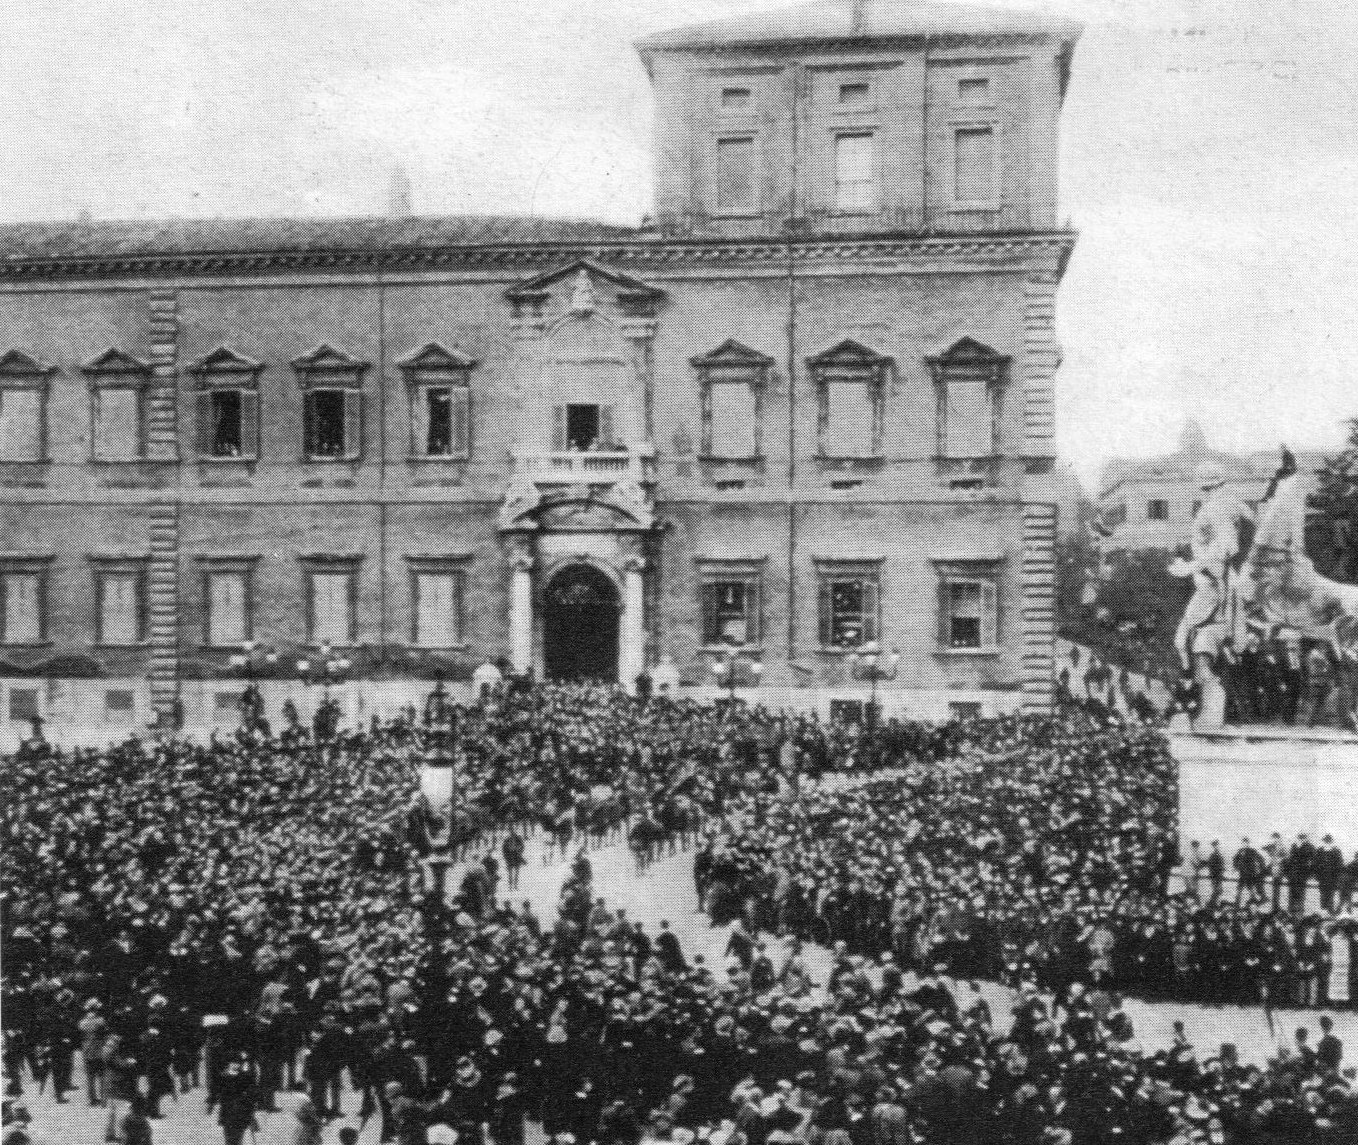 Fascists parading near the residence of the king of Italy